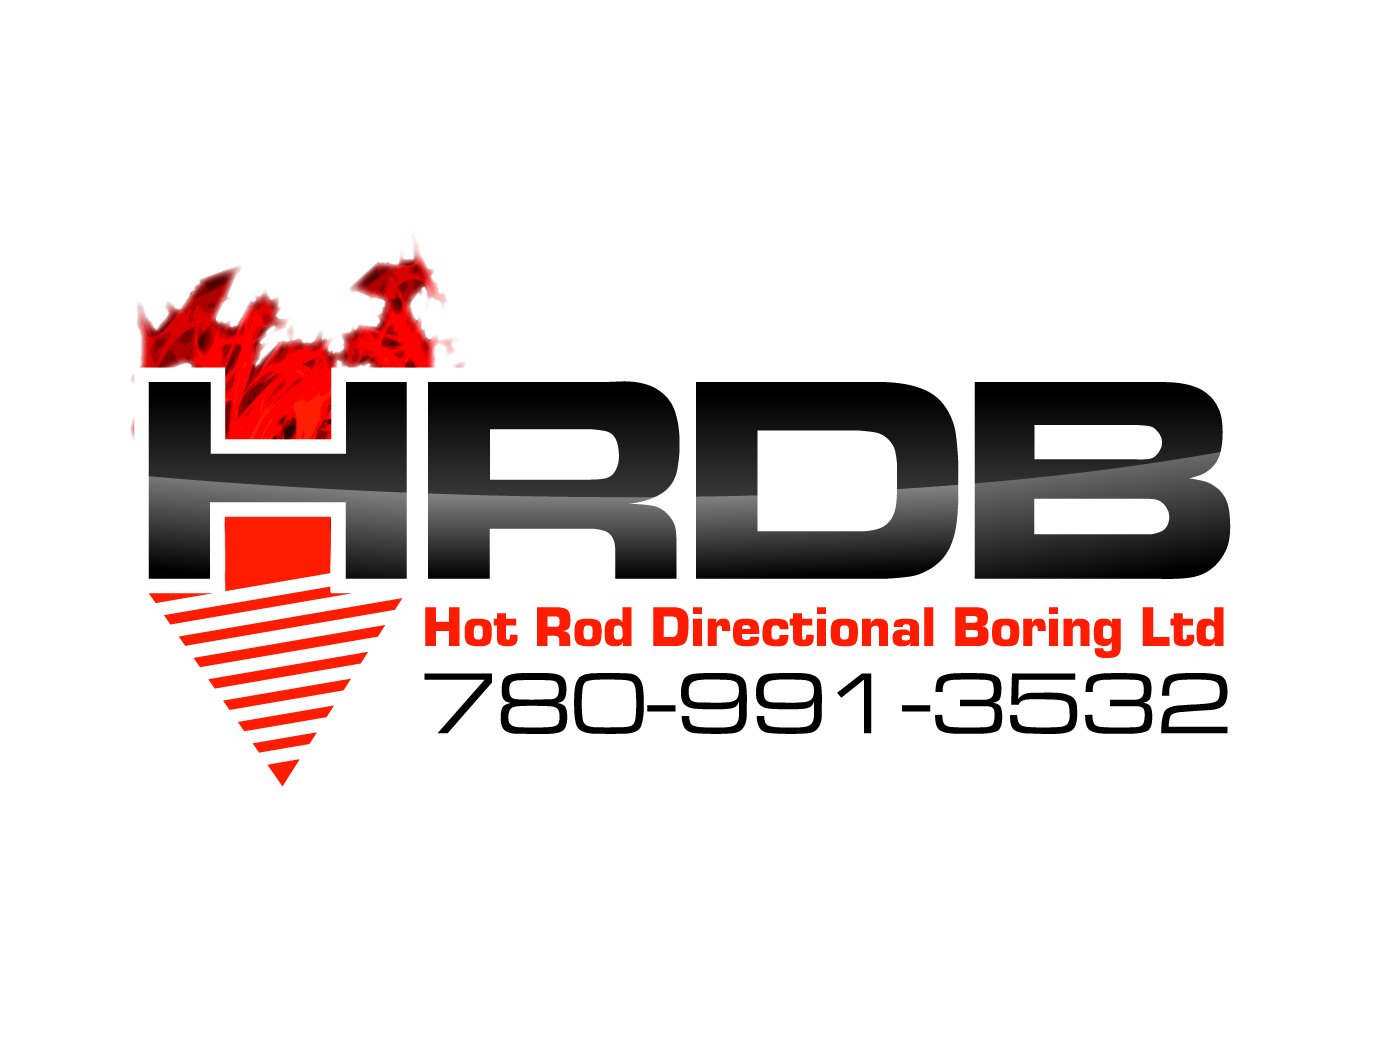 Hot Rod Directional Boring Ltd